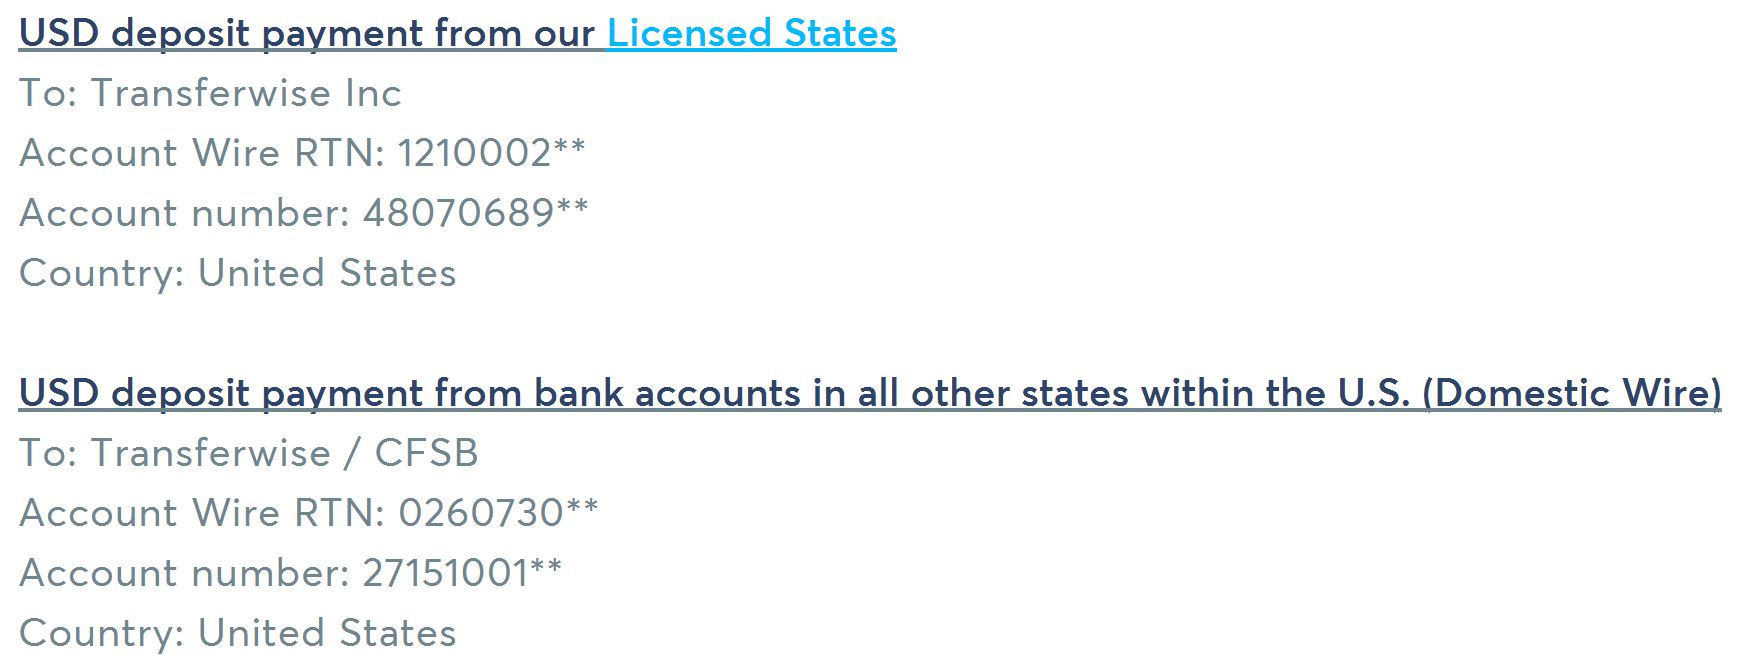 After The First Year In Usa Transferwise Was Already Transferring 2 Billion Out Of Country By March 2017 Had Us Licenses 39 States